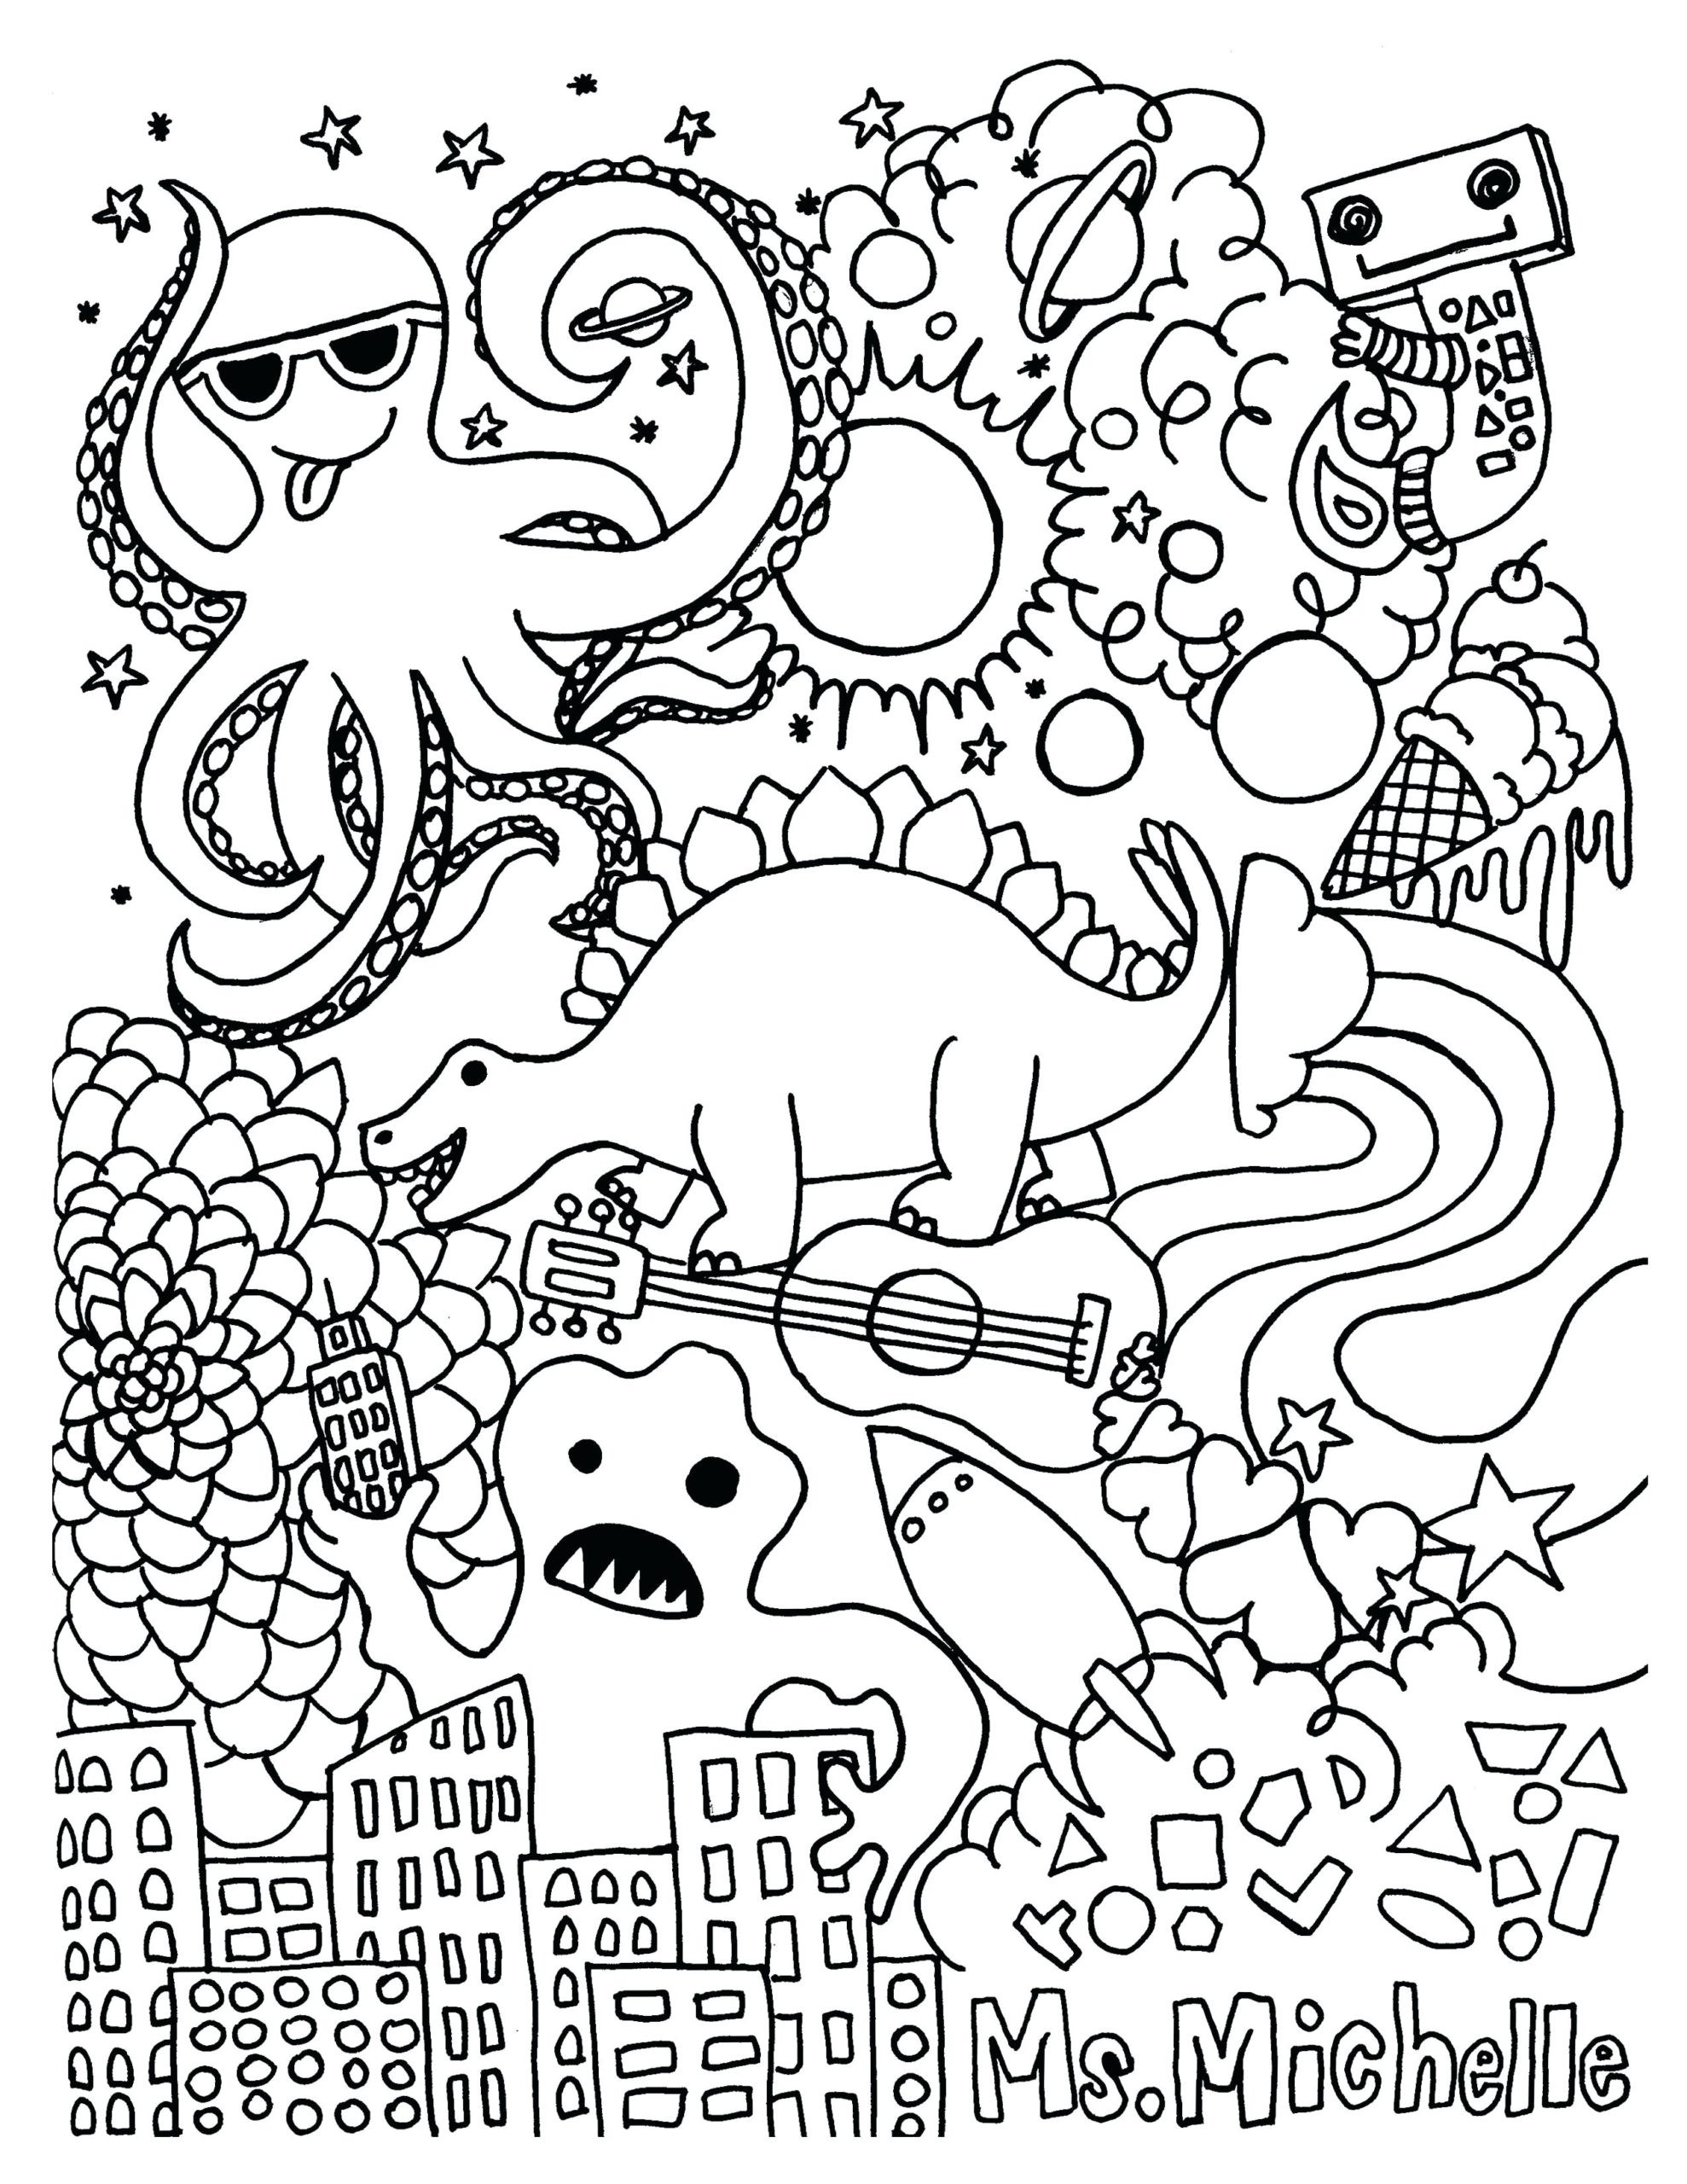 Second Grade Math Coloring Worksheets Free Math Coloring Worksheets Tag Awesome Math Coloring